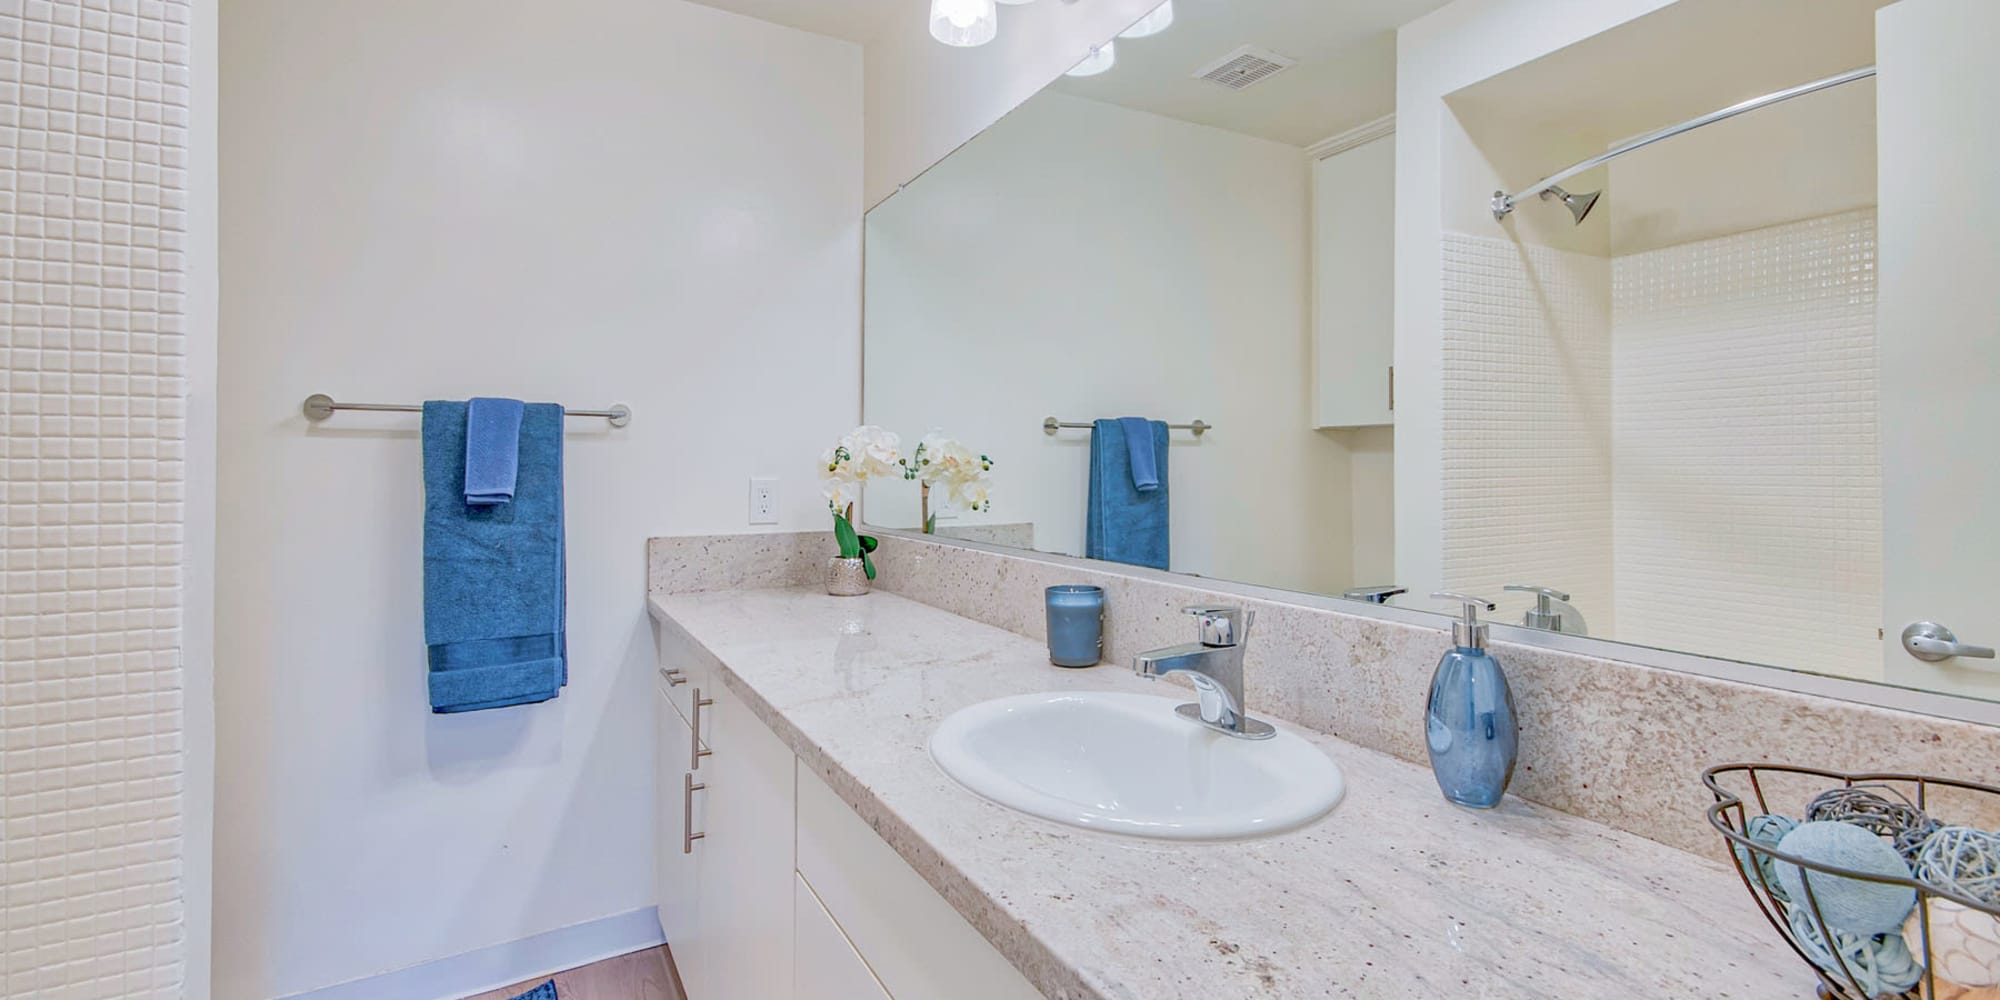 Expansive granite countertop and a custom tiled shower in a model home's bathroom at Villa Vicente in Los Angeles, California